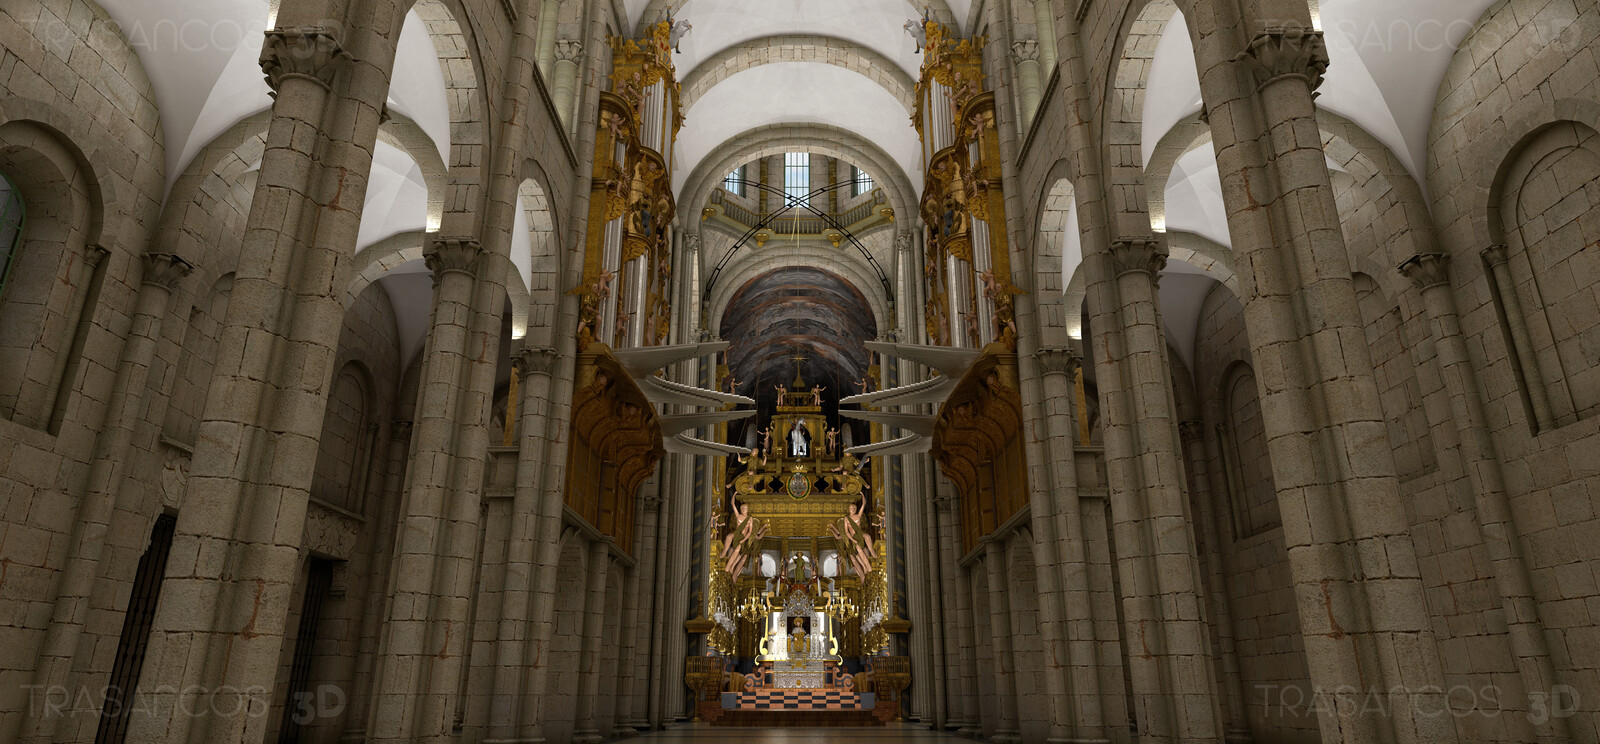 3D illustration. Interior. Main nave of the cathedral towards the main altar.